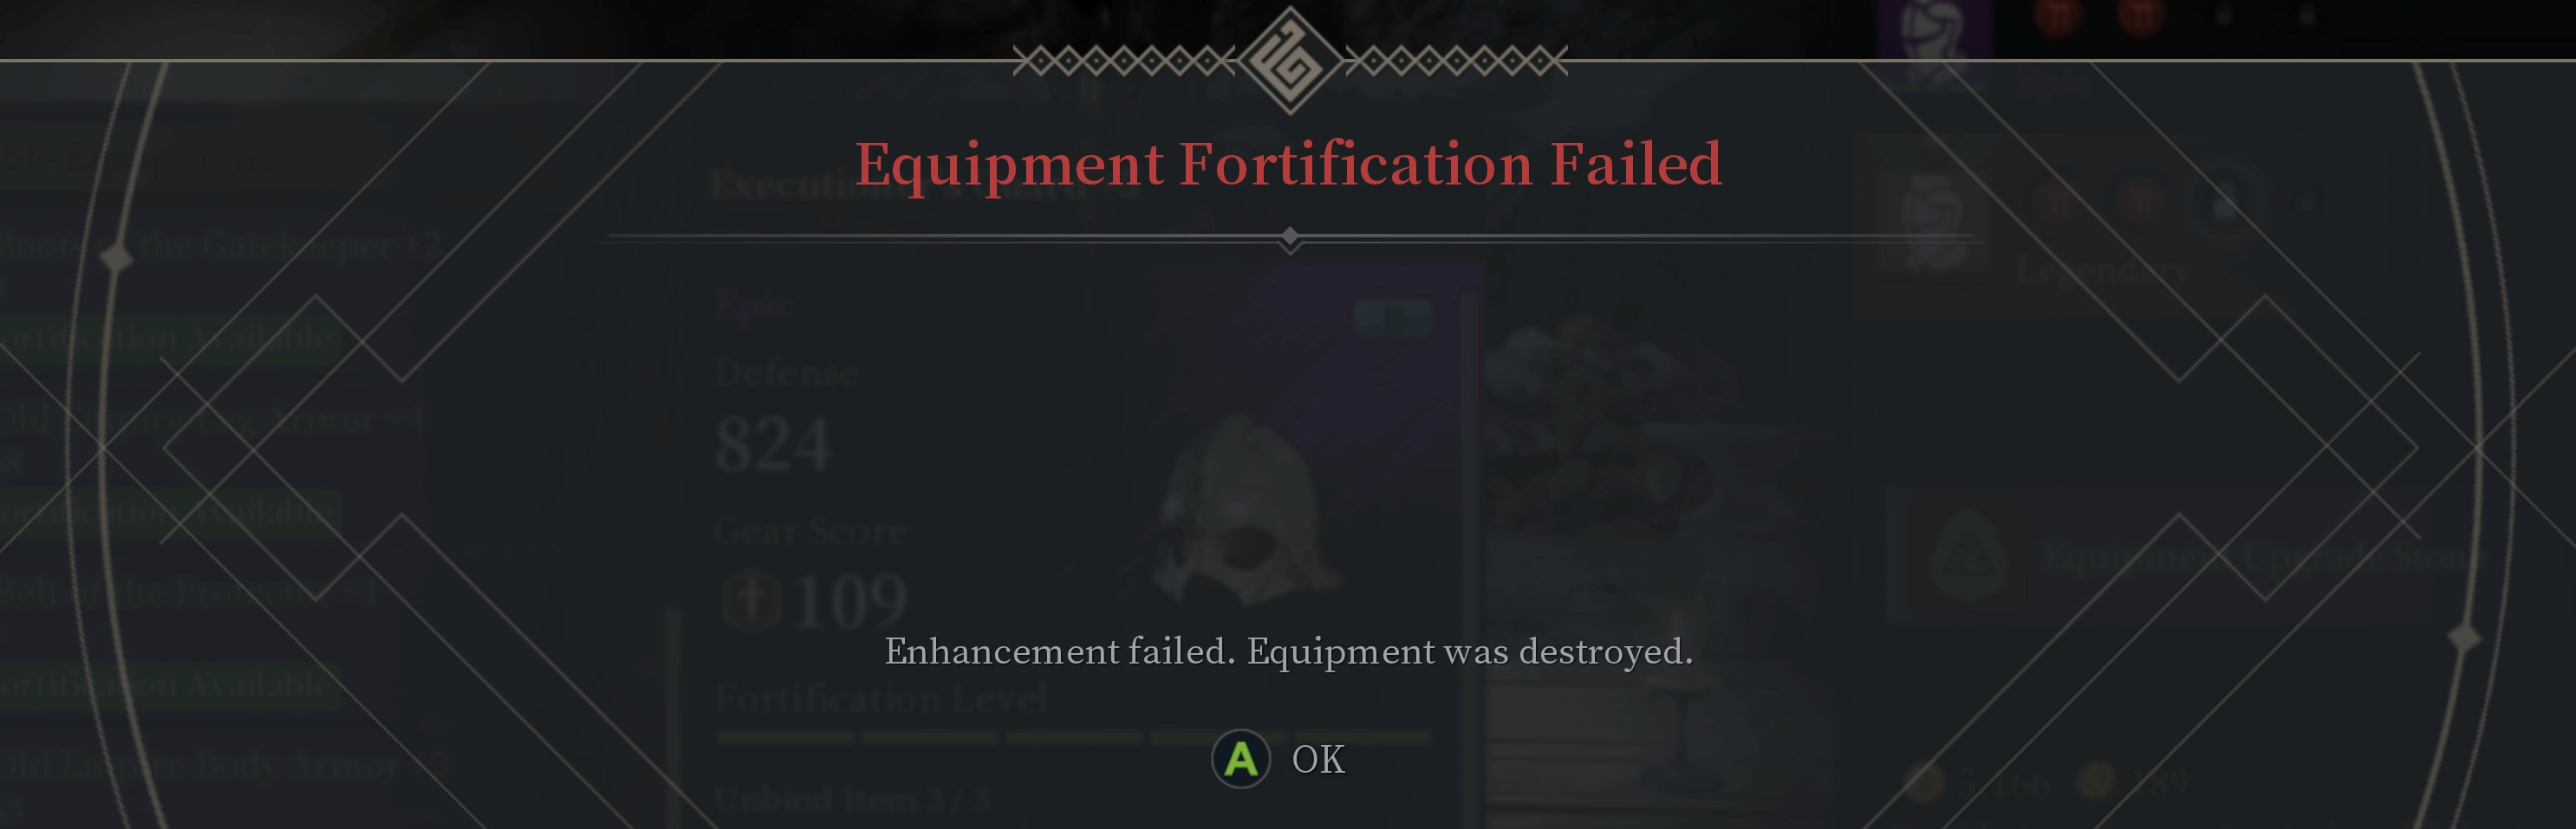 Unlicensed_Enhancement_Equipment_Fortification_Failed_Item_destroyed__2_.jpg